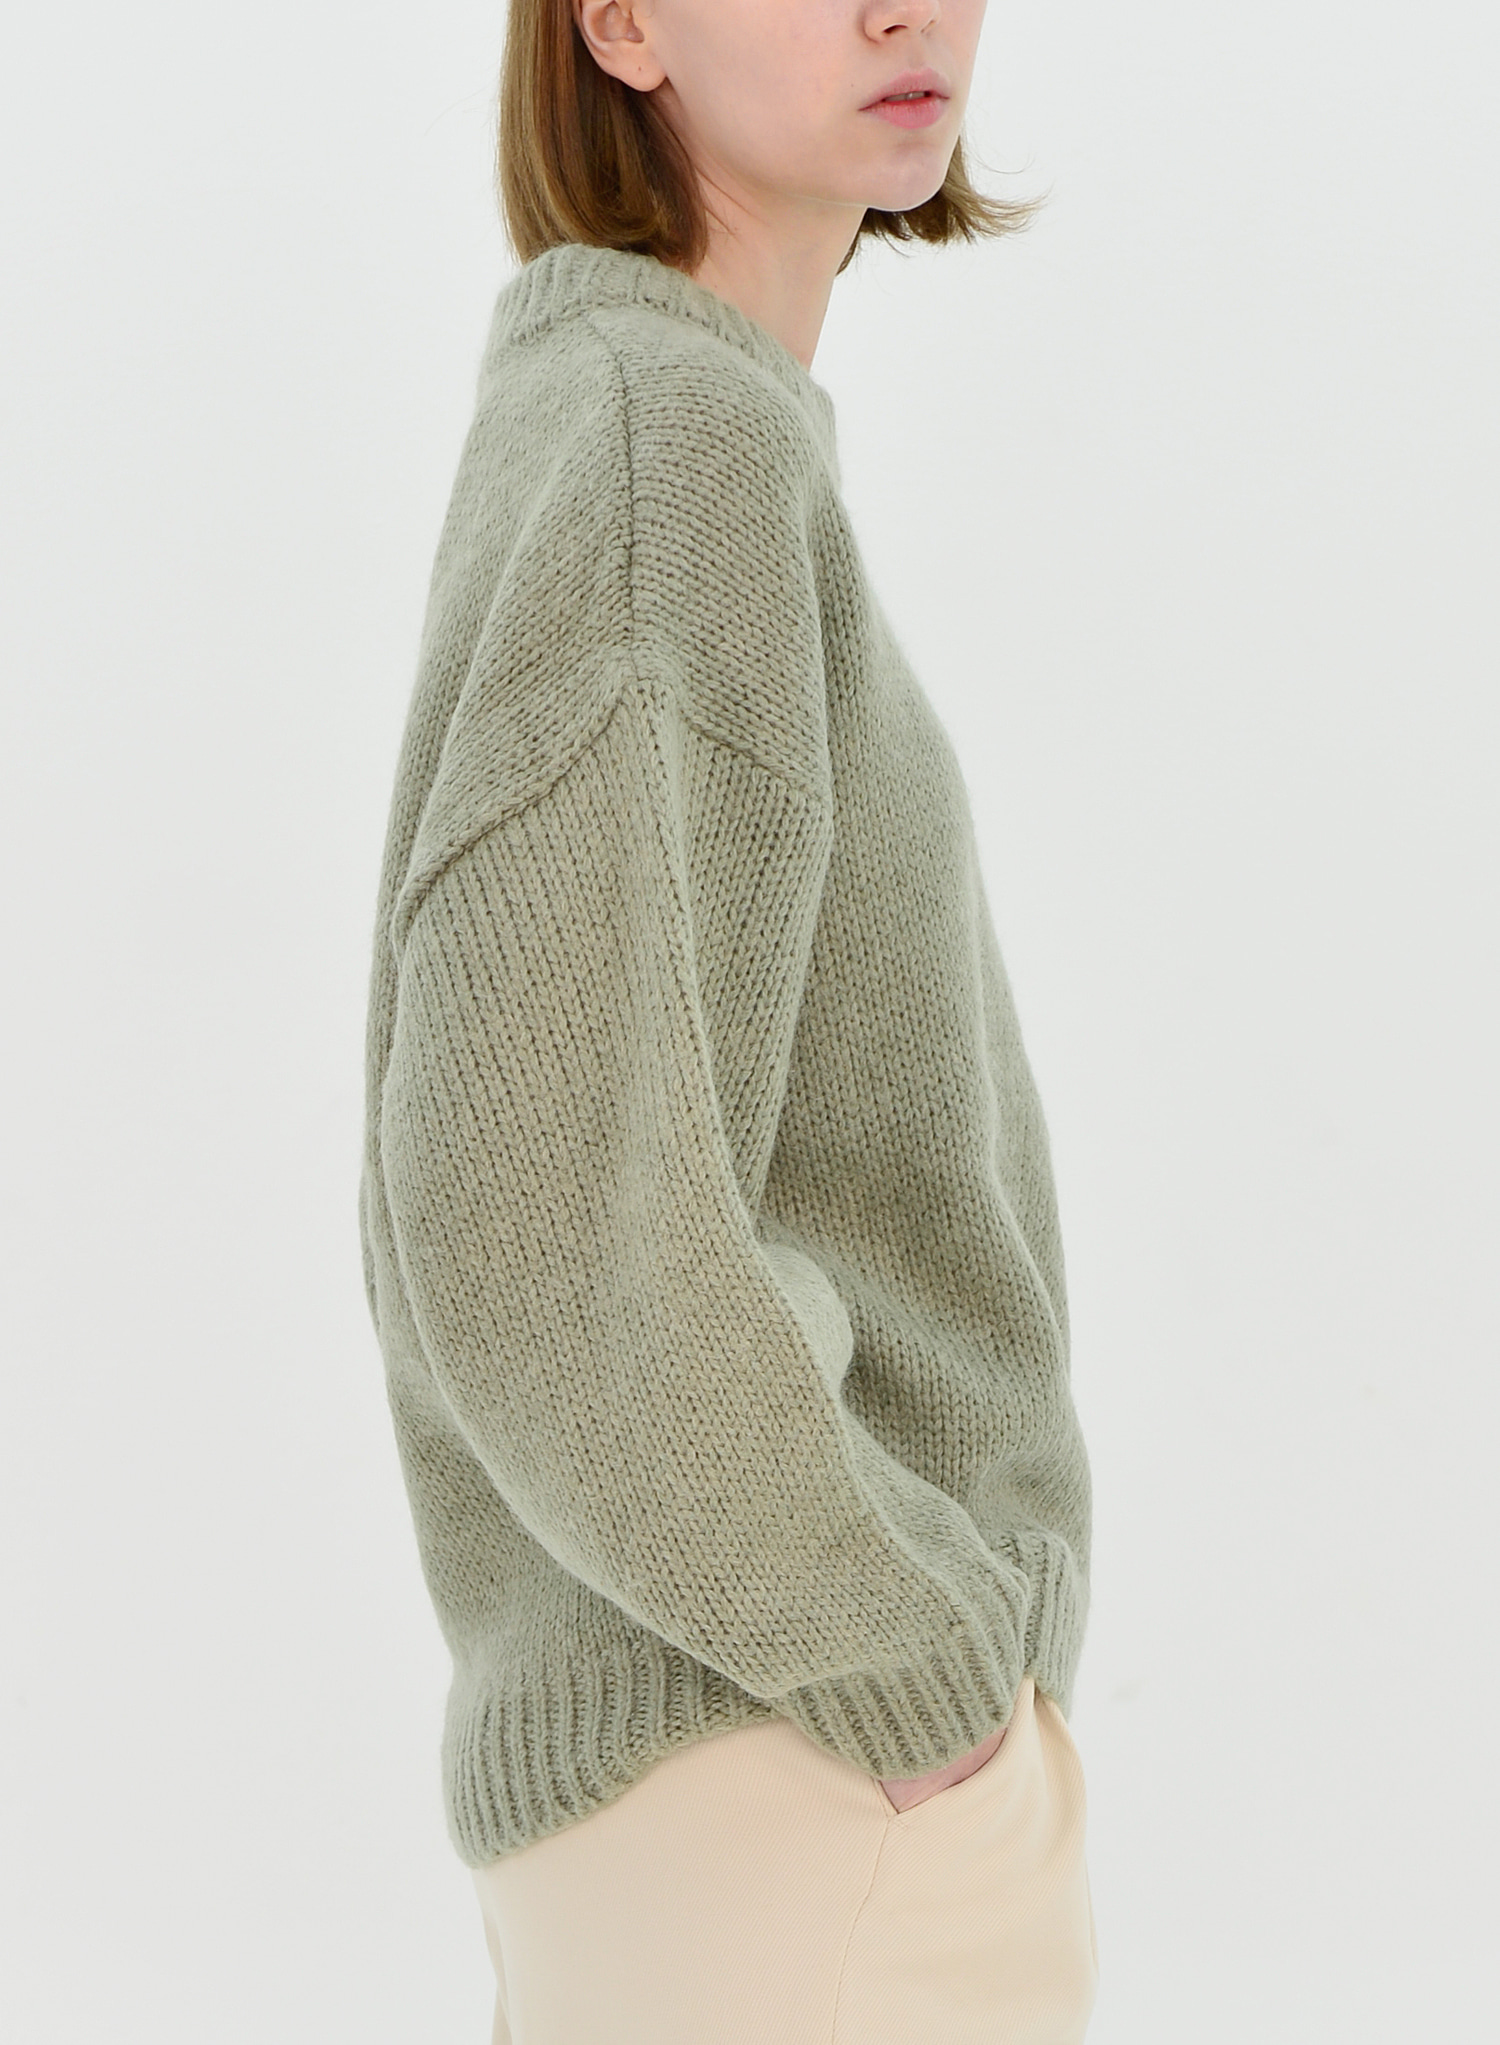 [SEASON OFF Event 30%↓] ALPACA LOOSE FIT KNIT